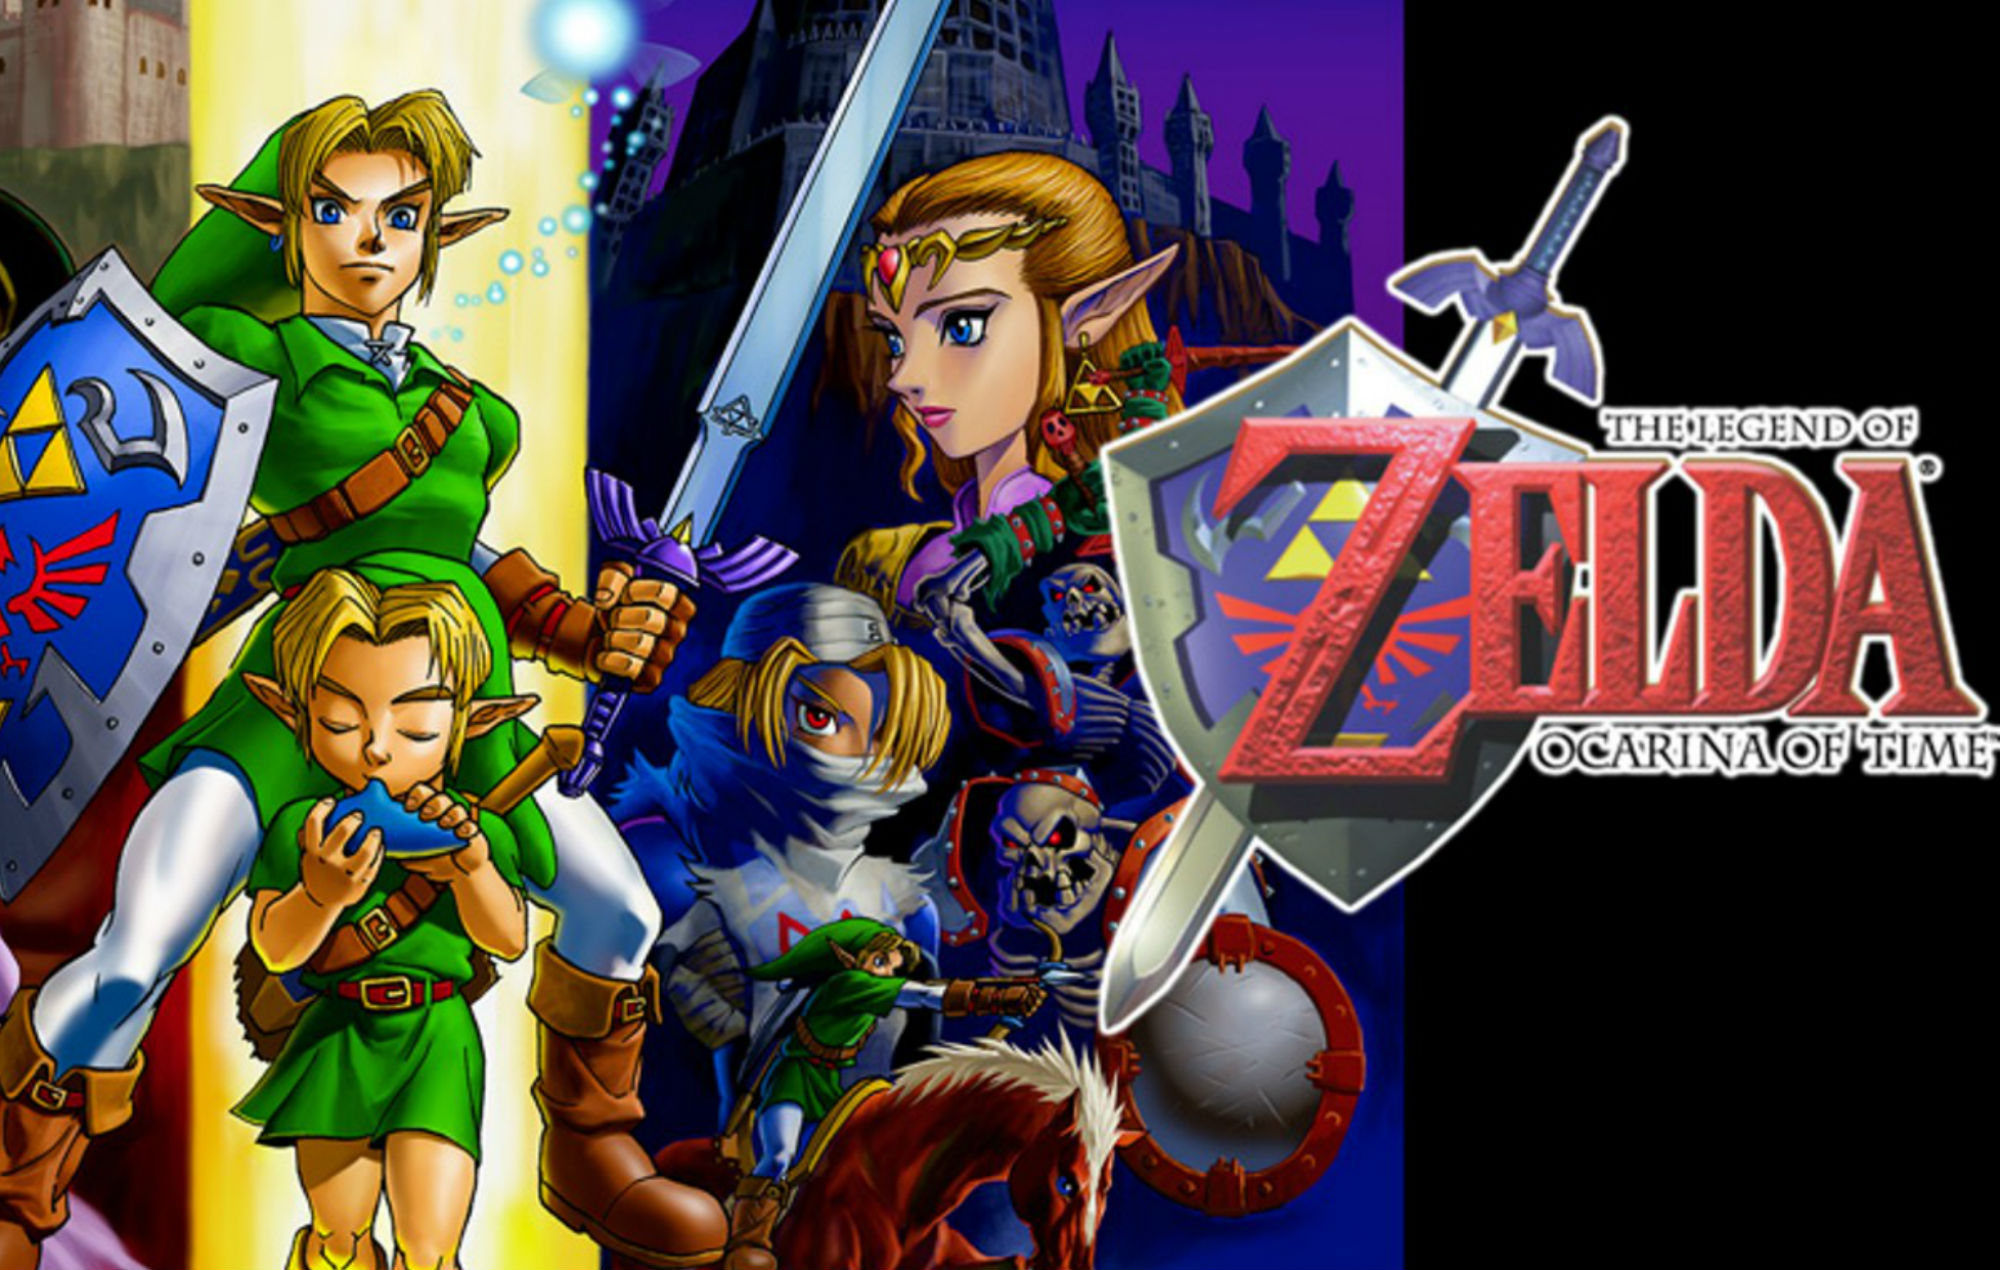 A Love Letter To The Legend Of Zelda Ocarina Of Time